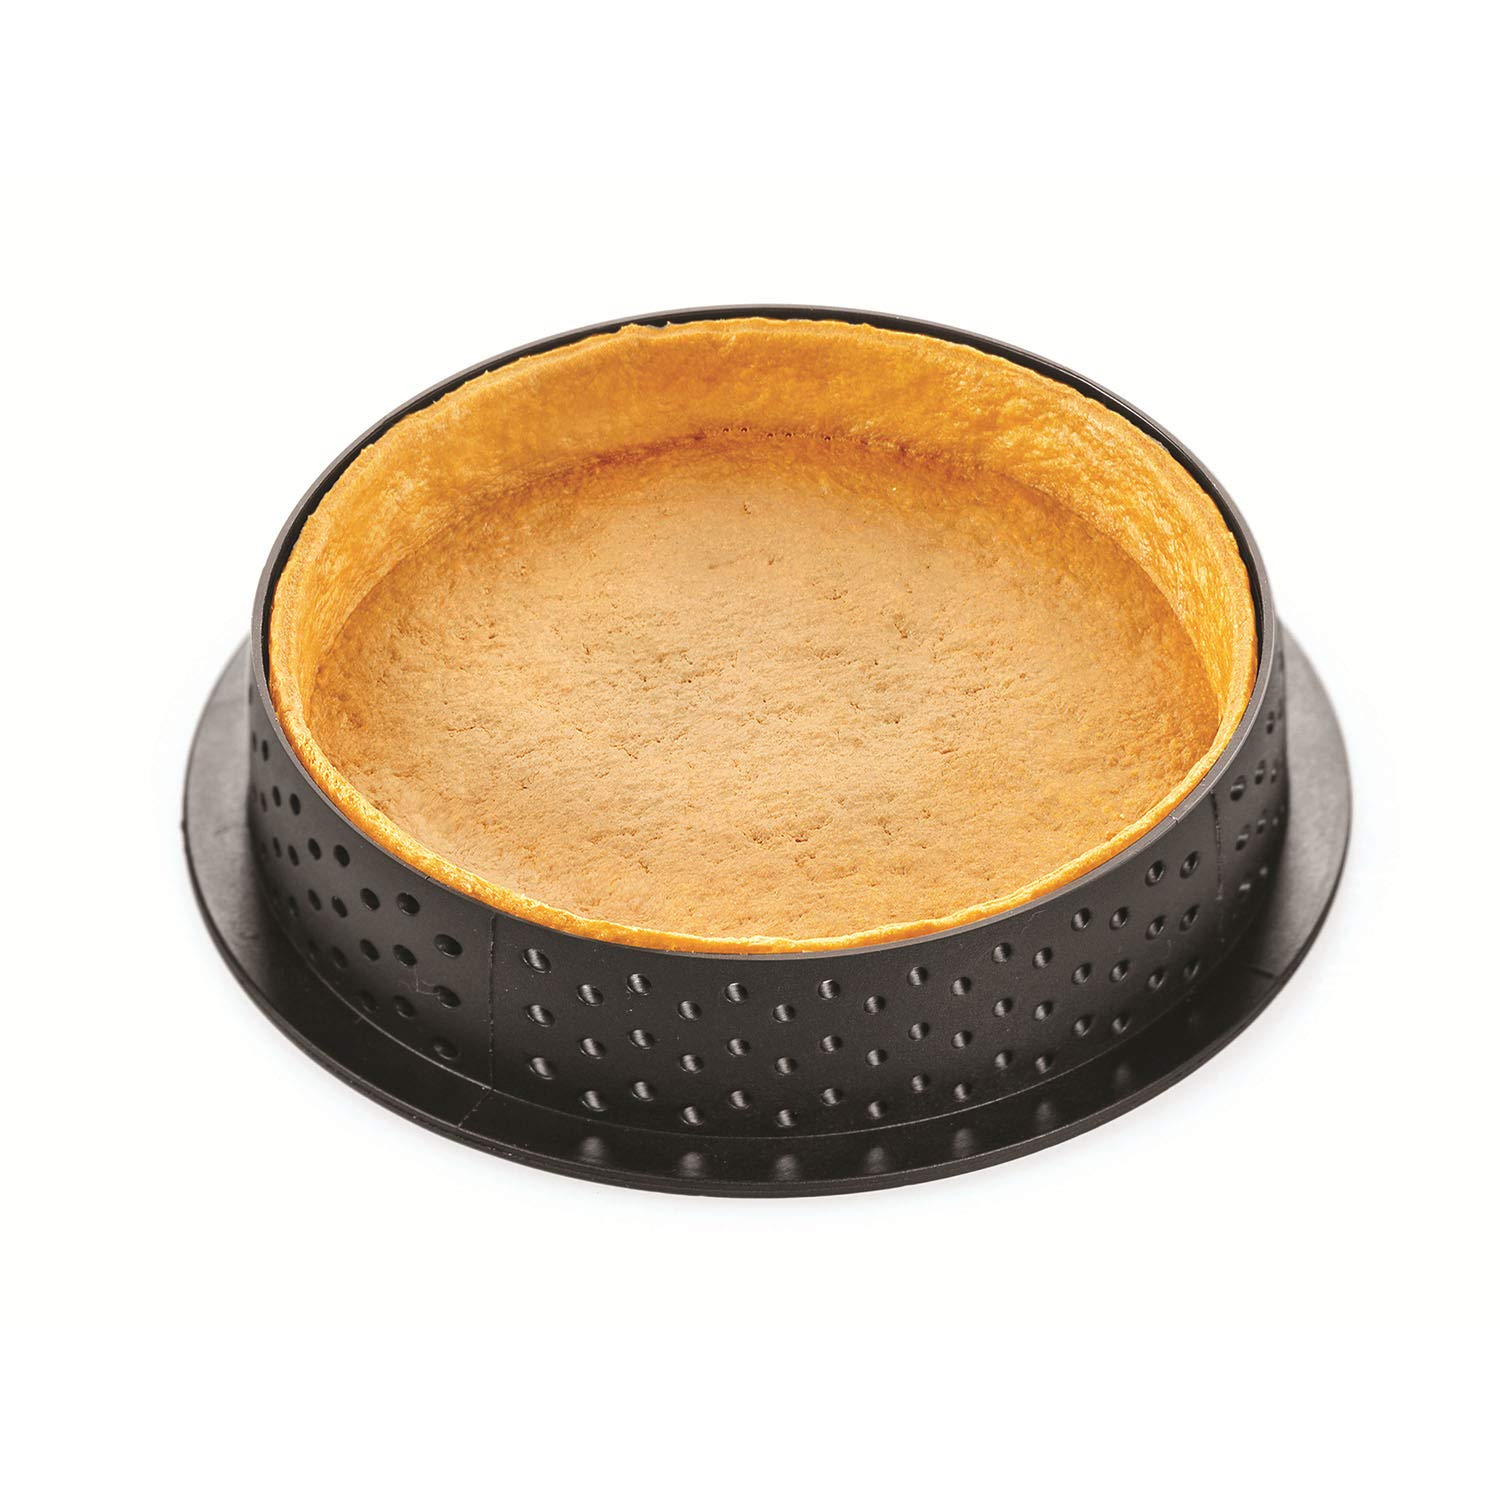 Silikomart''Kit Tarte Ring Honoré 80'' Silicone Mold with 8 Cavities, Each 2.75 Inch Diameter x 0.51 Inch High, Plus 8 Heat-Resistant Perforated Plastic Round Cutting Rings by Silikomart (Image #5)